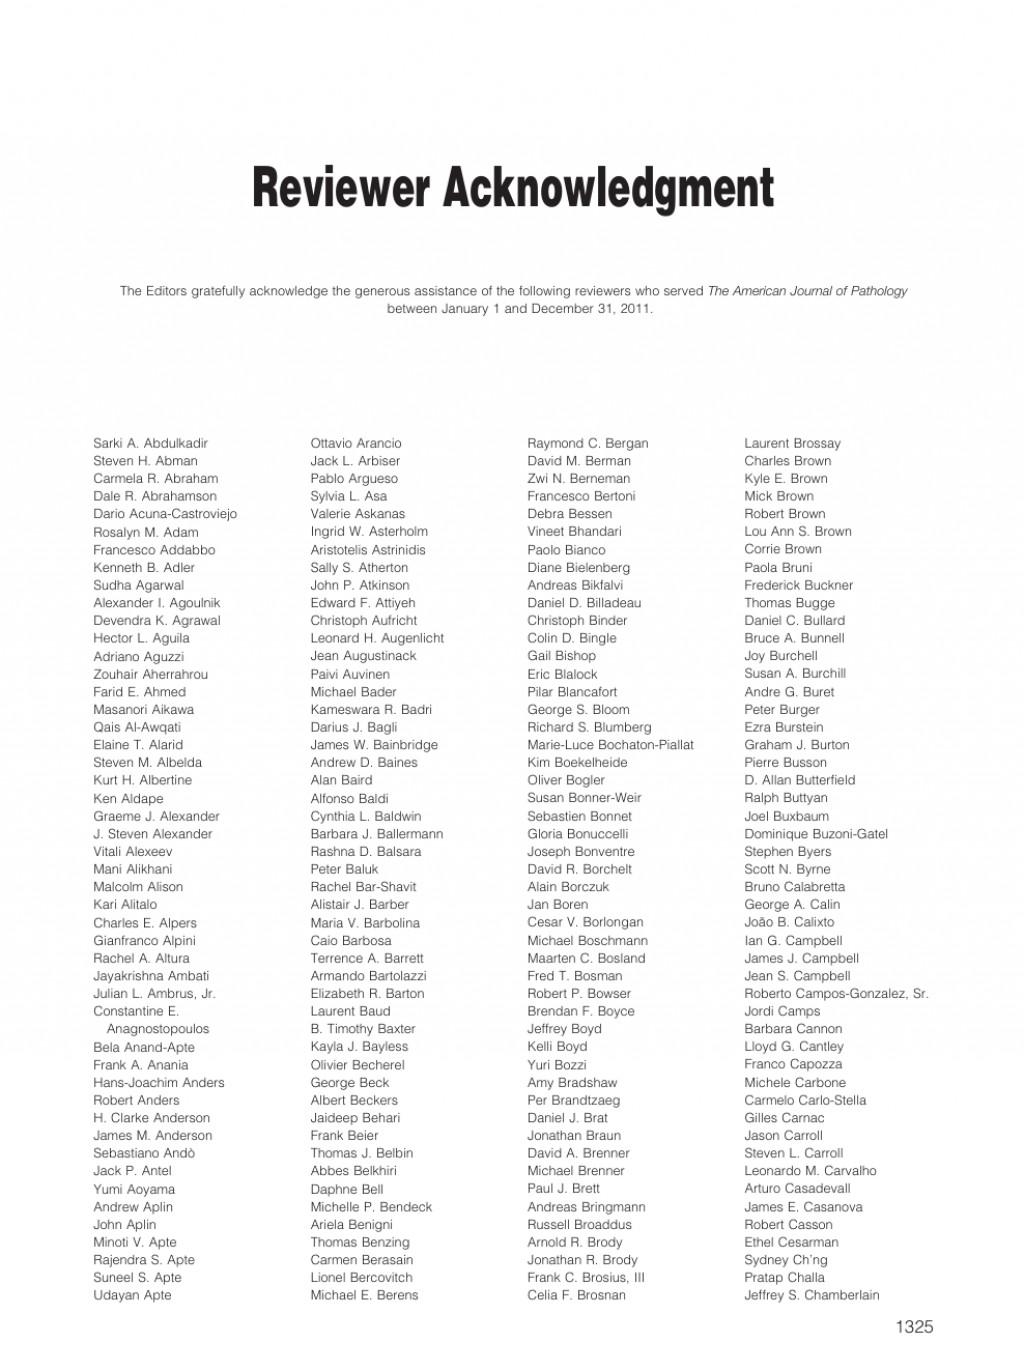 012 Acknowledgement Example For Research Rare Paper Pdf Large